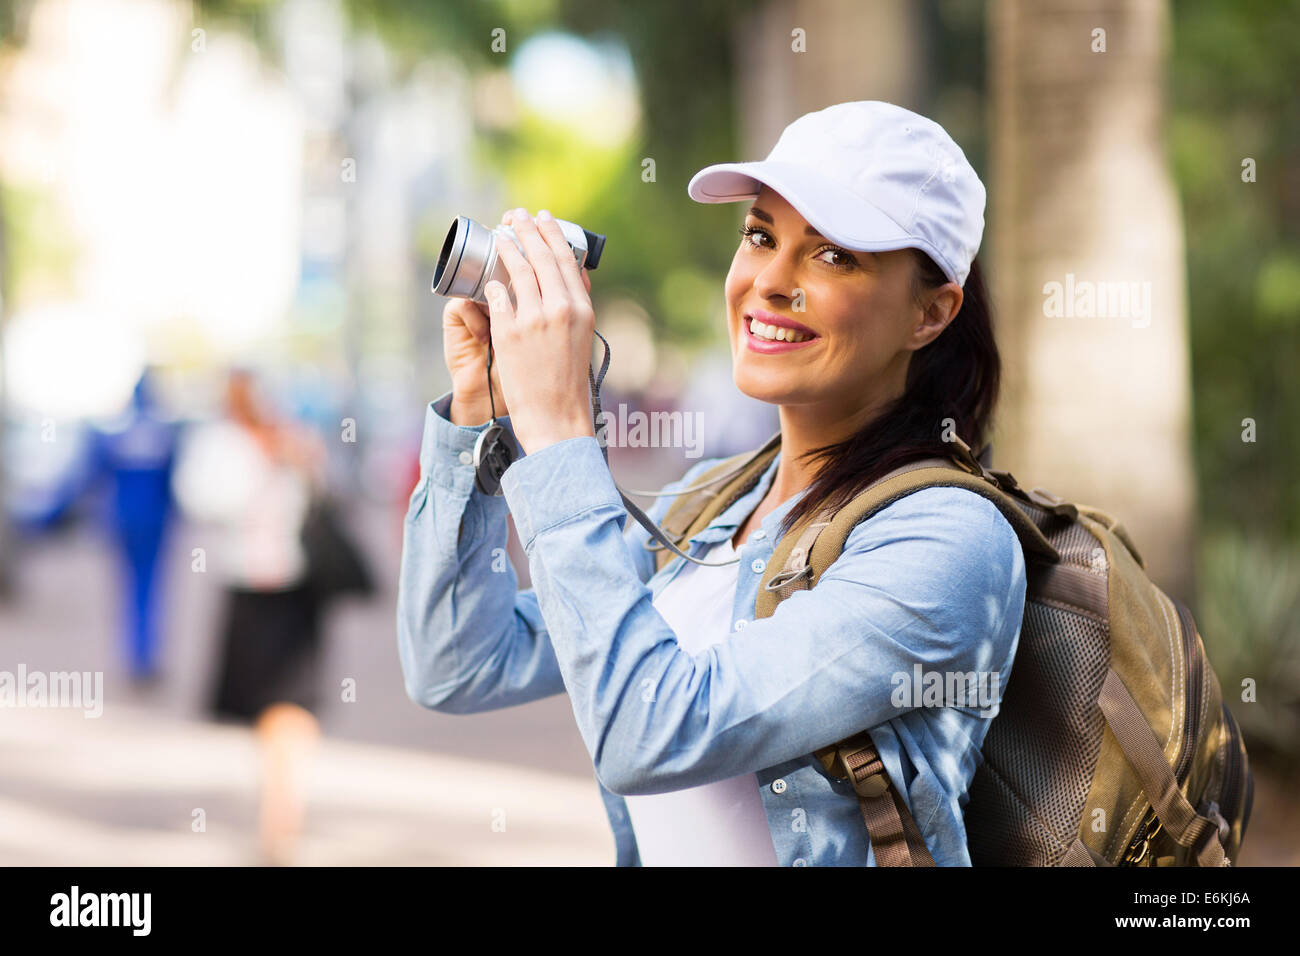 cheerful young tourist photographing in town Stock Photo